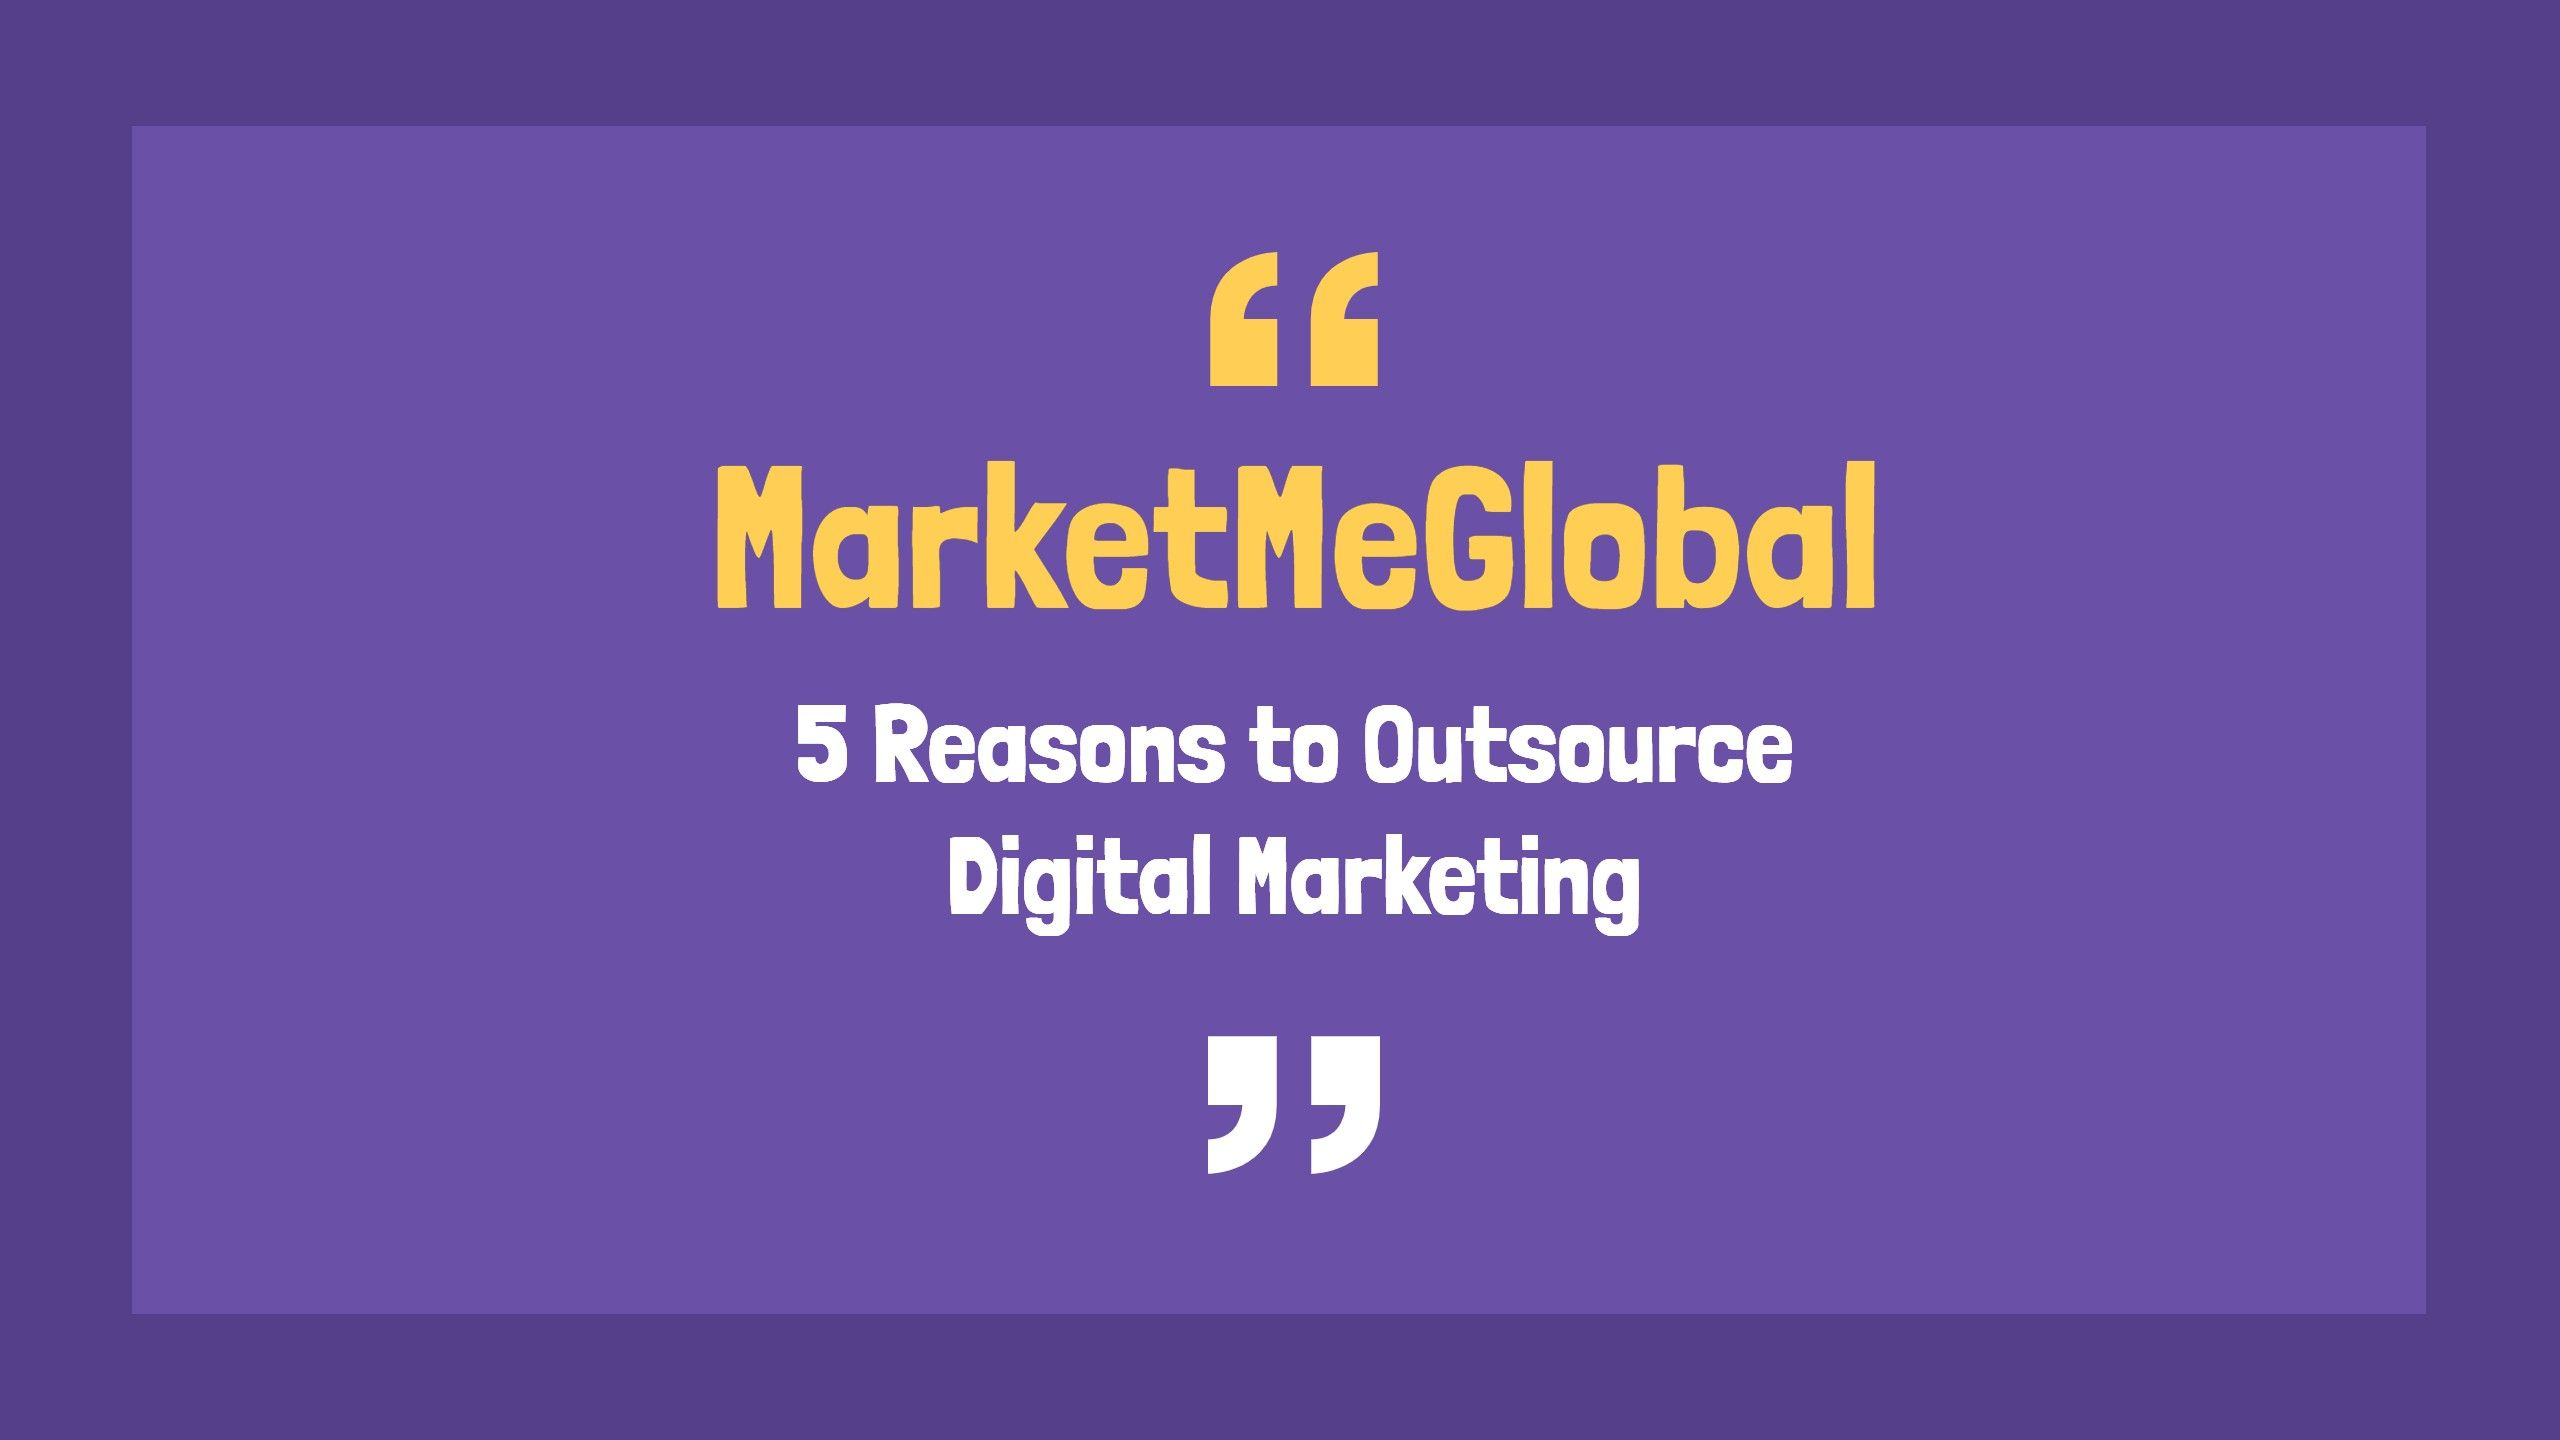 5 Reasons to Outsource Your Digital Marketing in 2020